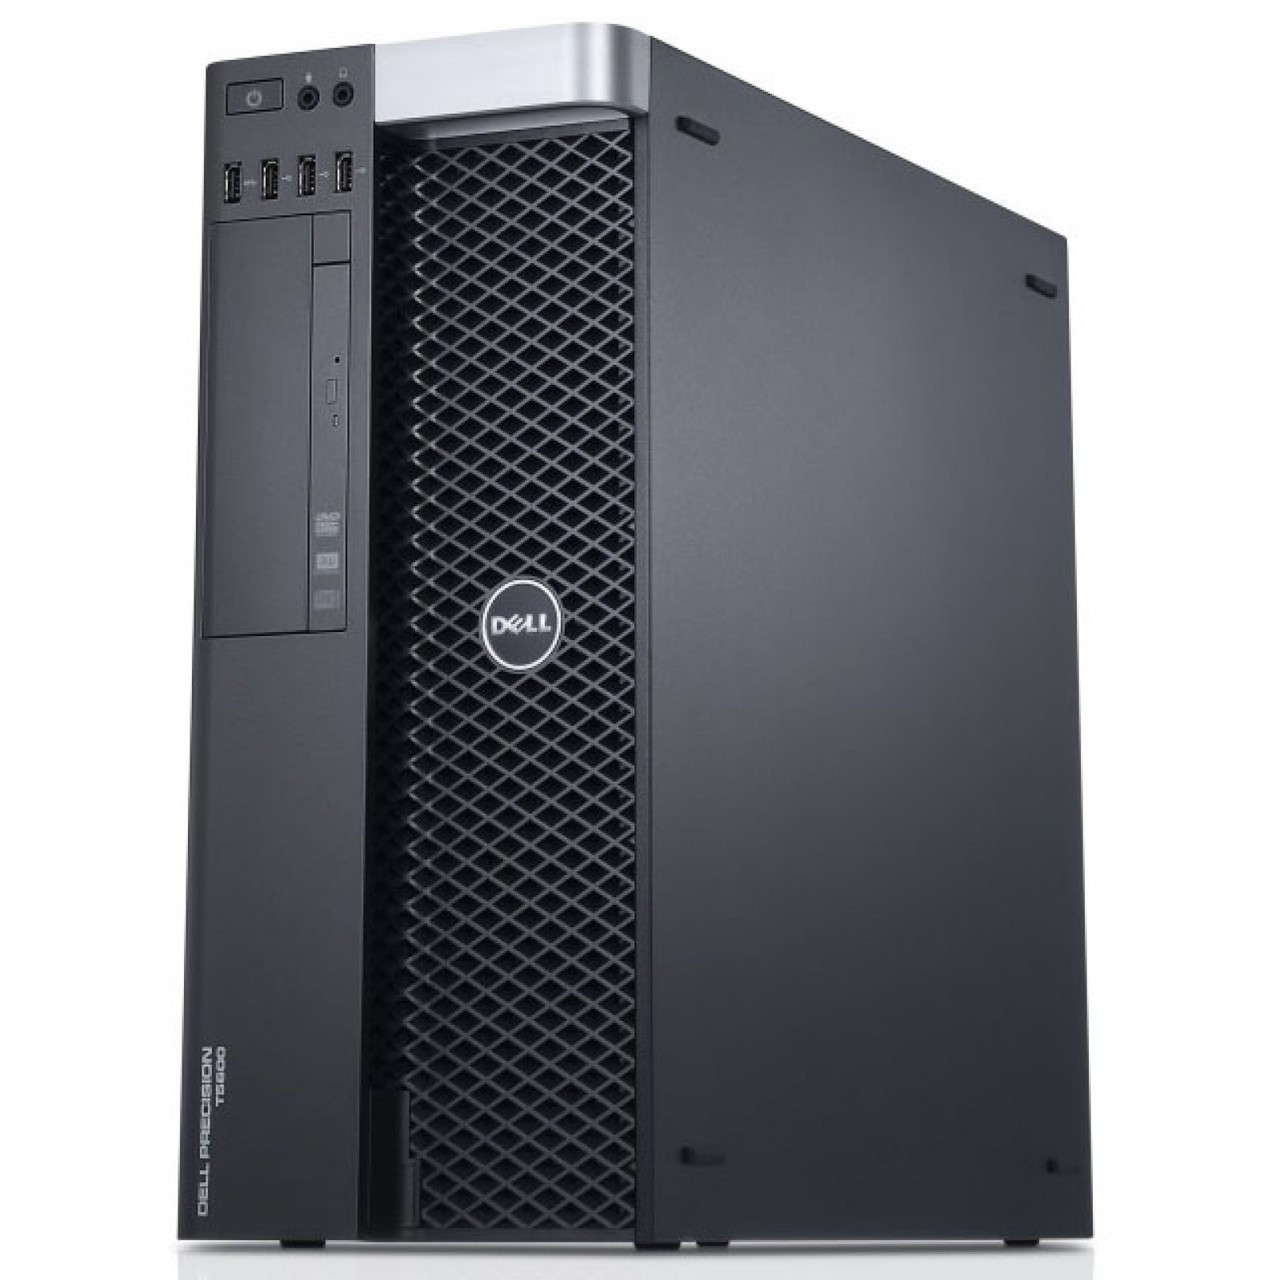 Dell Precision T5600 Tower Quad Core Dual Intel Xeon